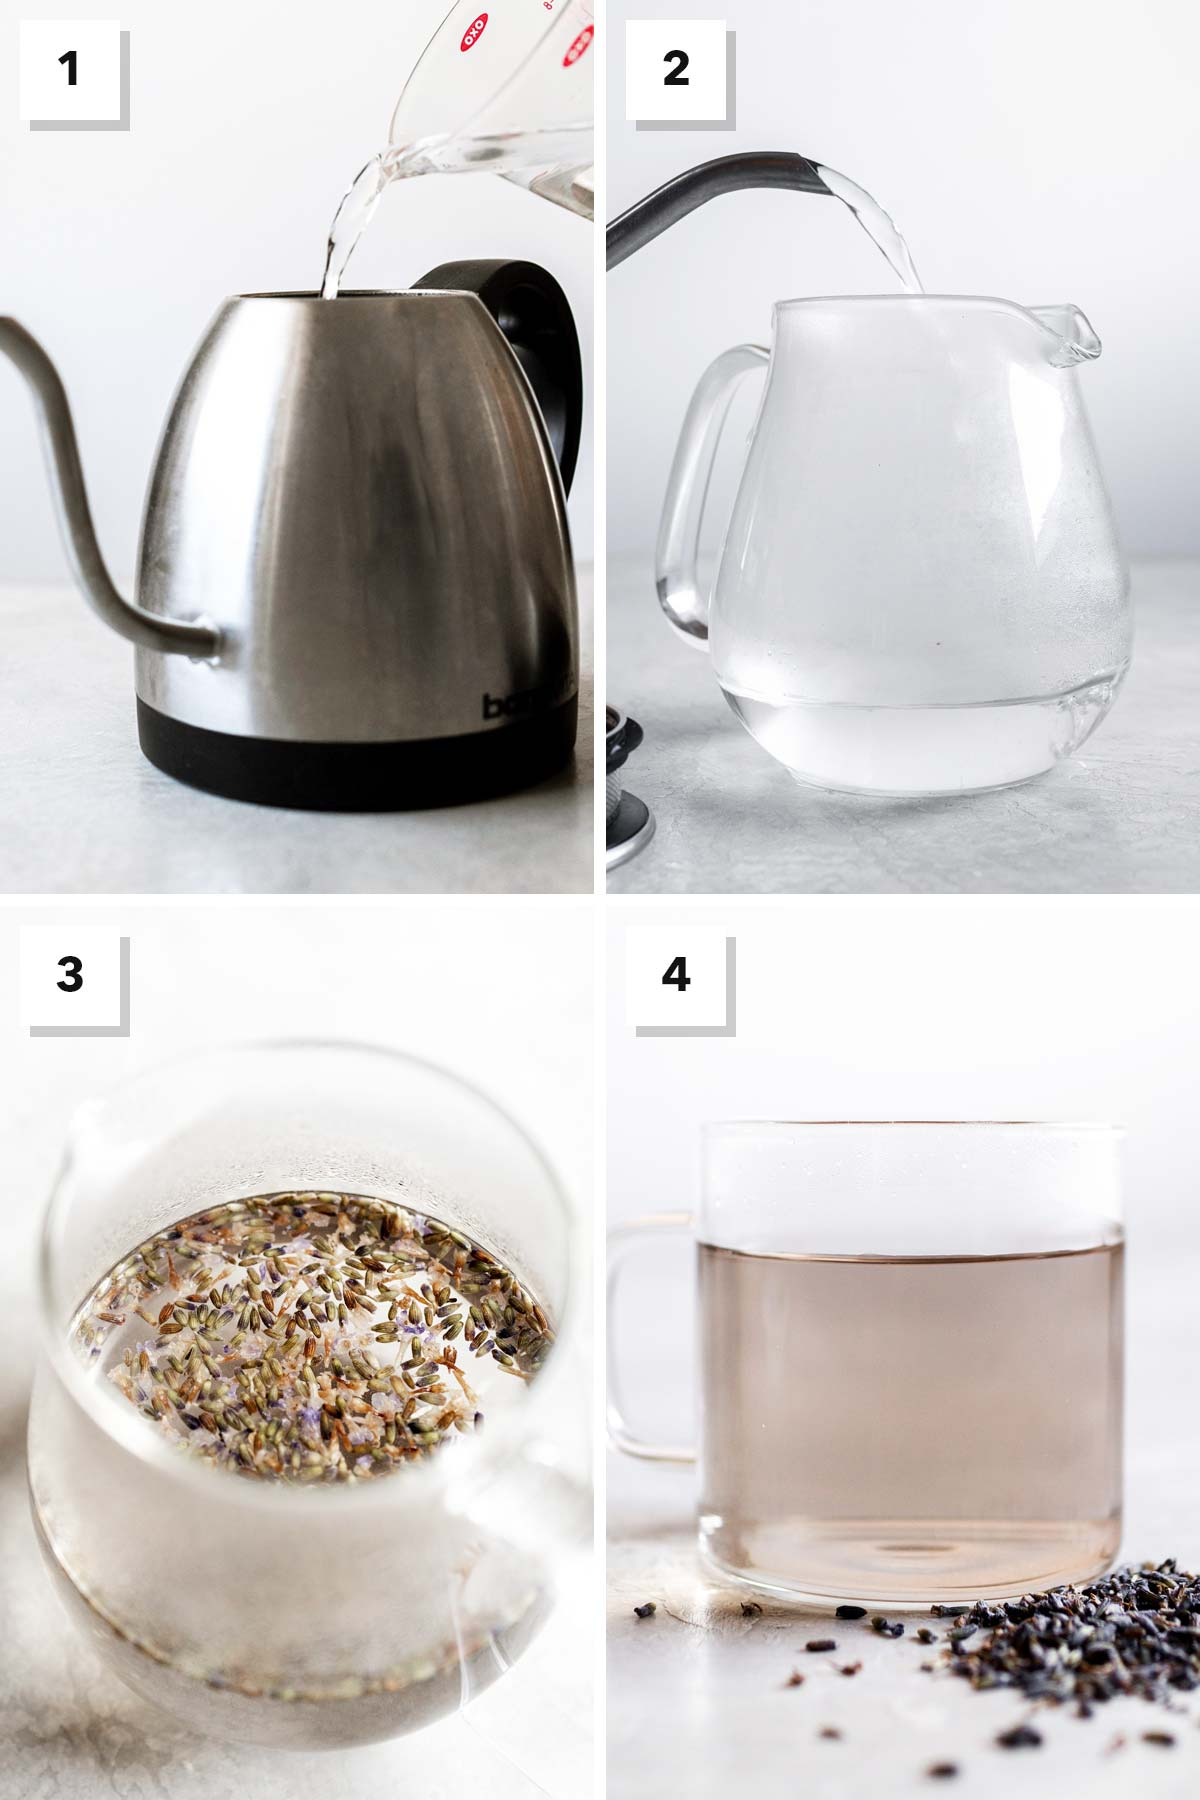 Four photo collage showing steps on how to make lavender tea.